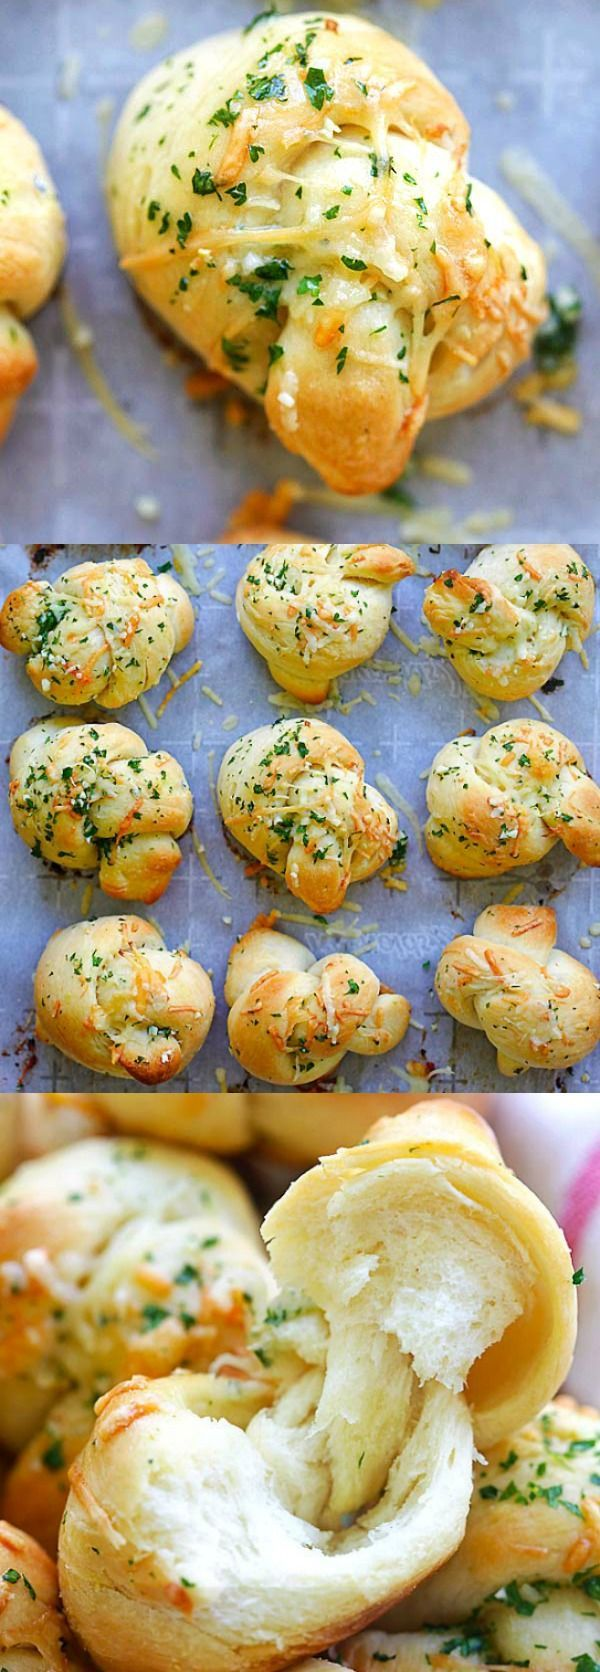 Garlic Parmesan Dinner Rolls – homemade bread dough turned into the best dinner rolls with garlic and Parmesan cheese. So good | http://rasamalaysia.com